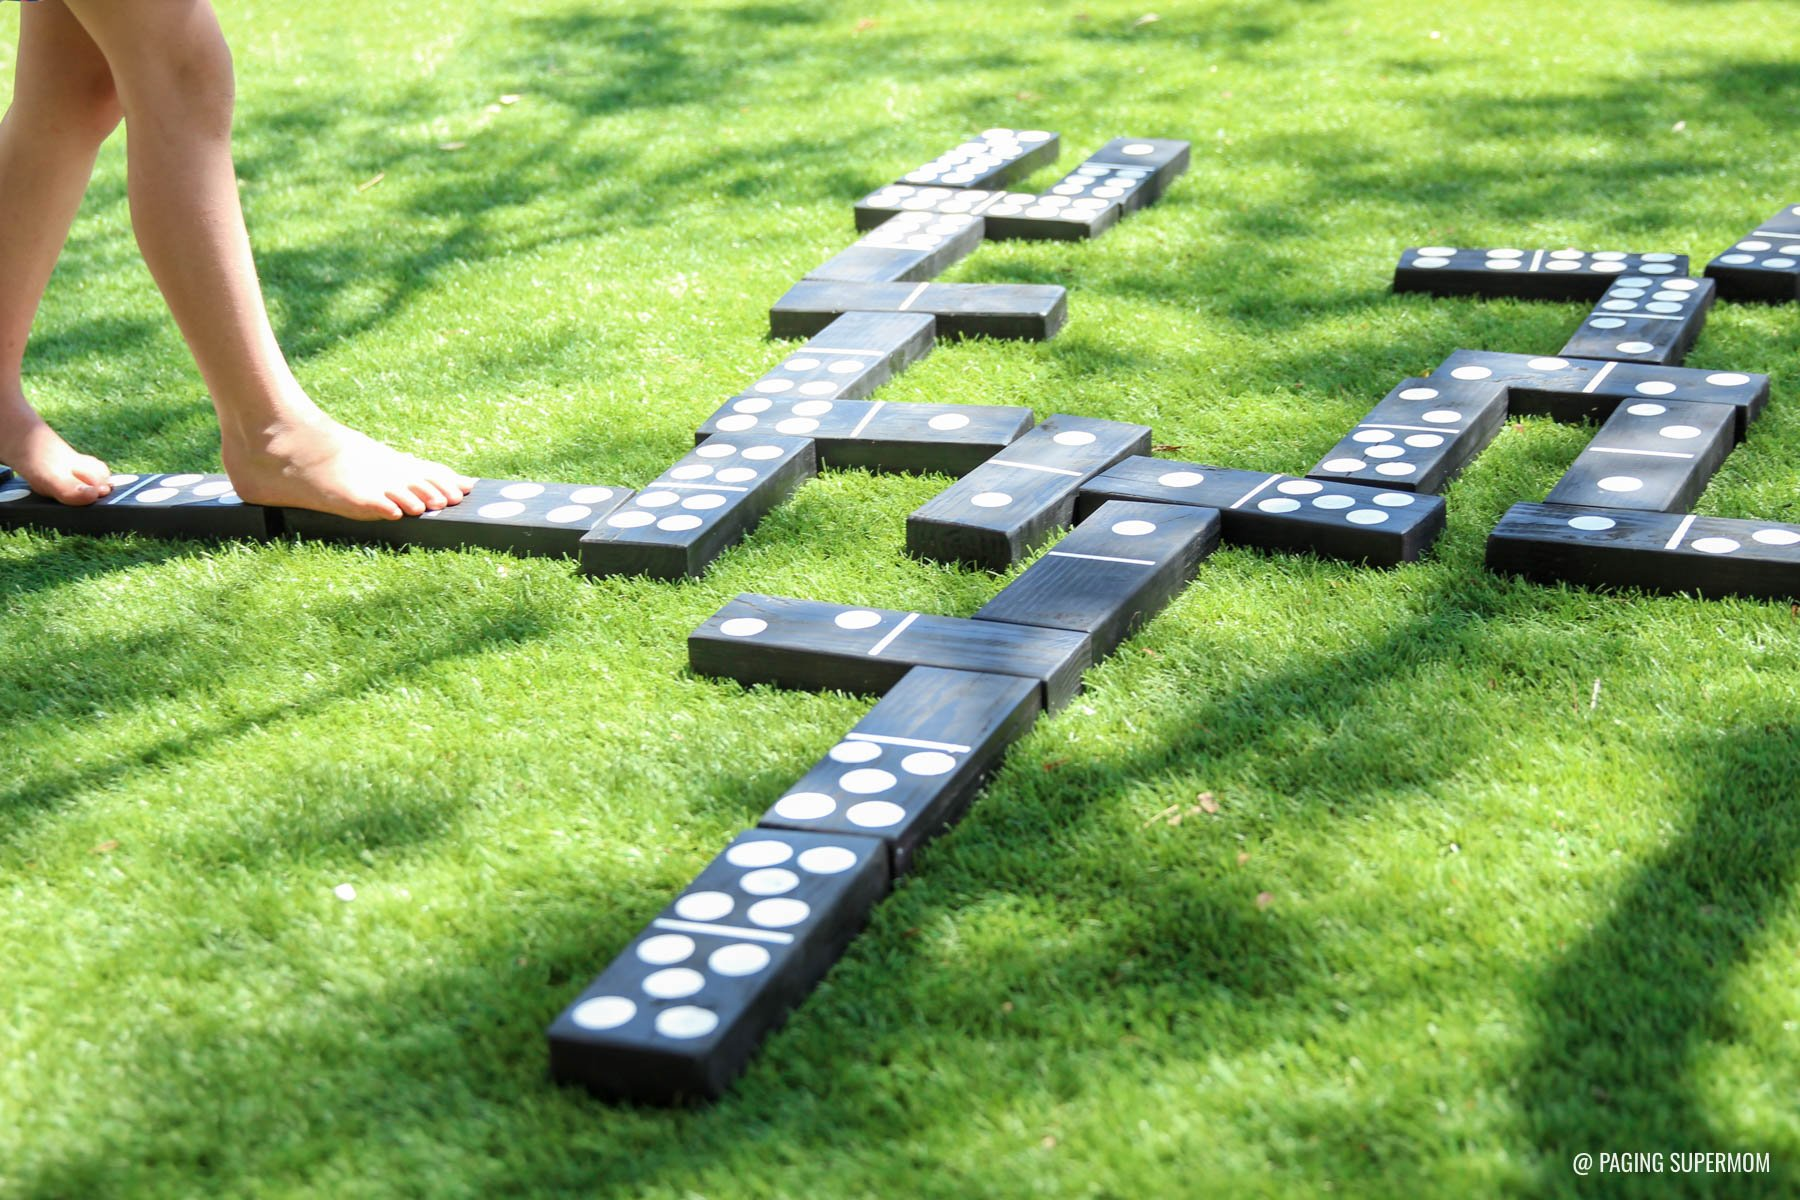 Backyard games how to make yard dominoes ring toss giant jenga how to make yard dominoes diy backyard games plans from homedepot via pagingsupermom solutioingenieria Image collections